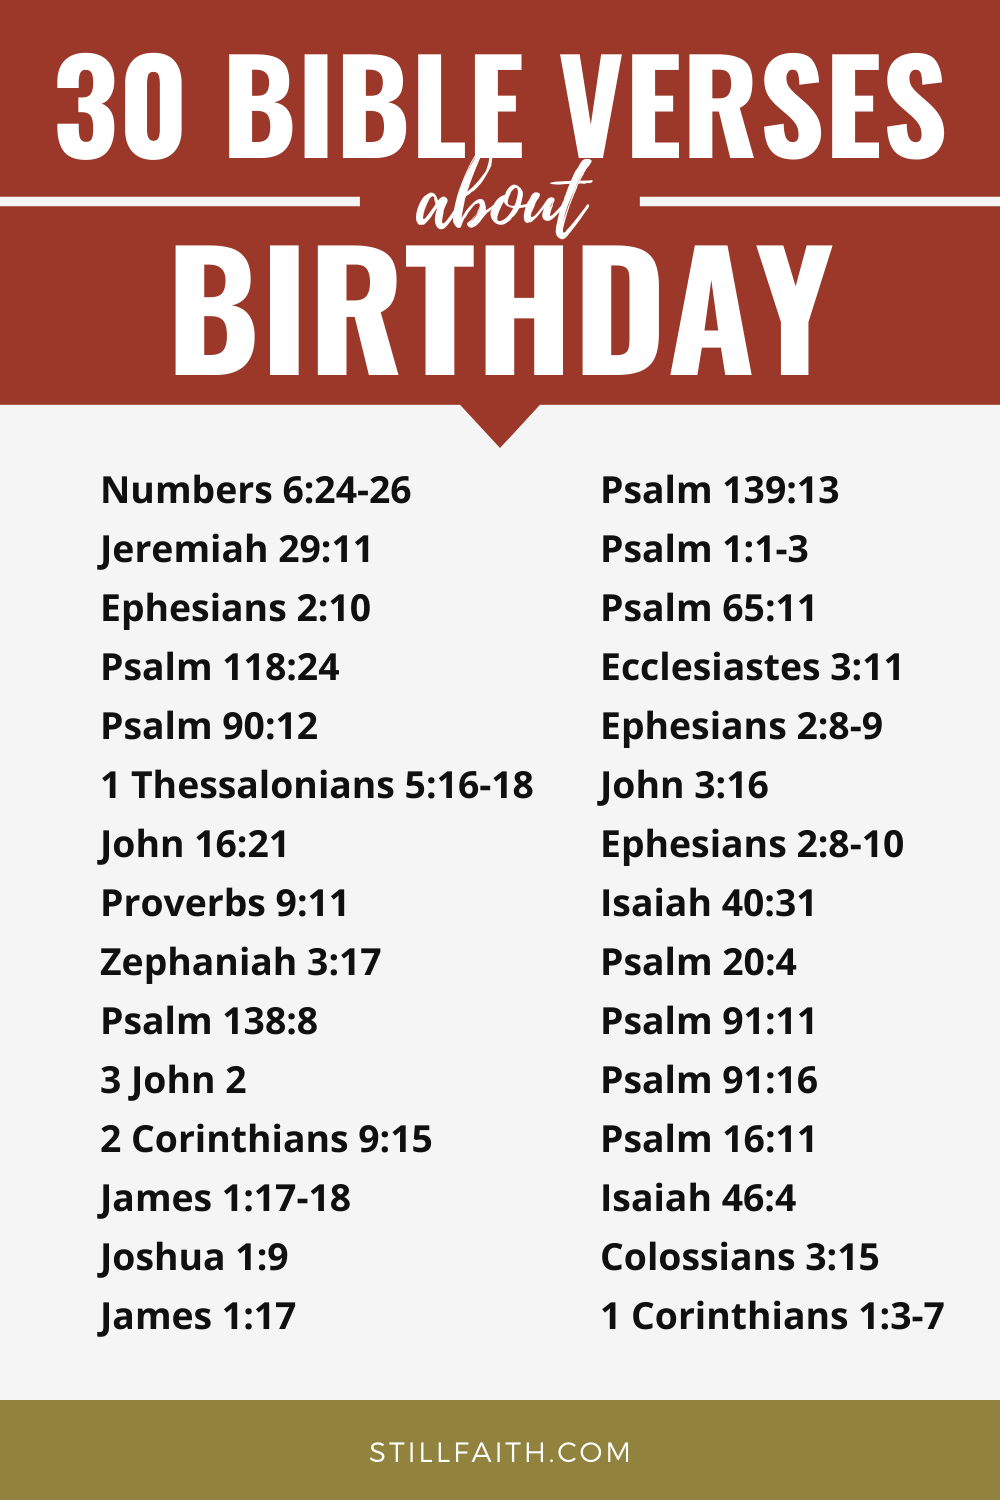 144 Bible Verses about Birthday